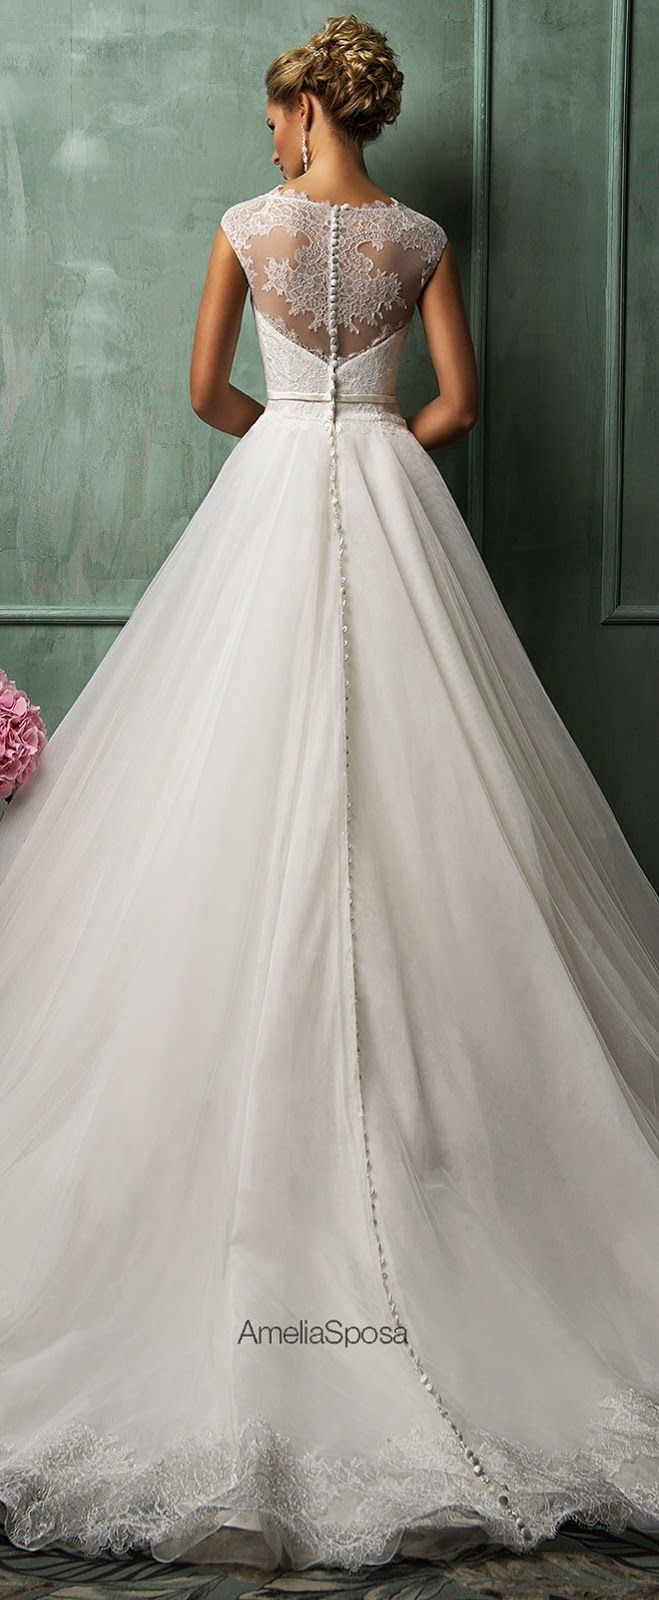 Amelia sposa wedding dresses amelia sposa amelia and wedding